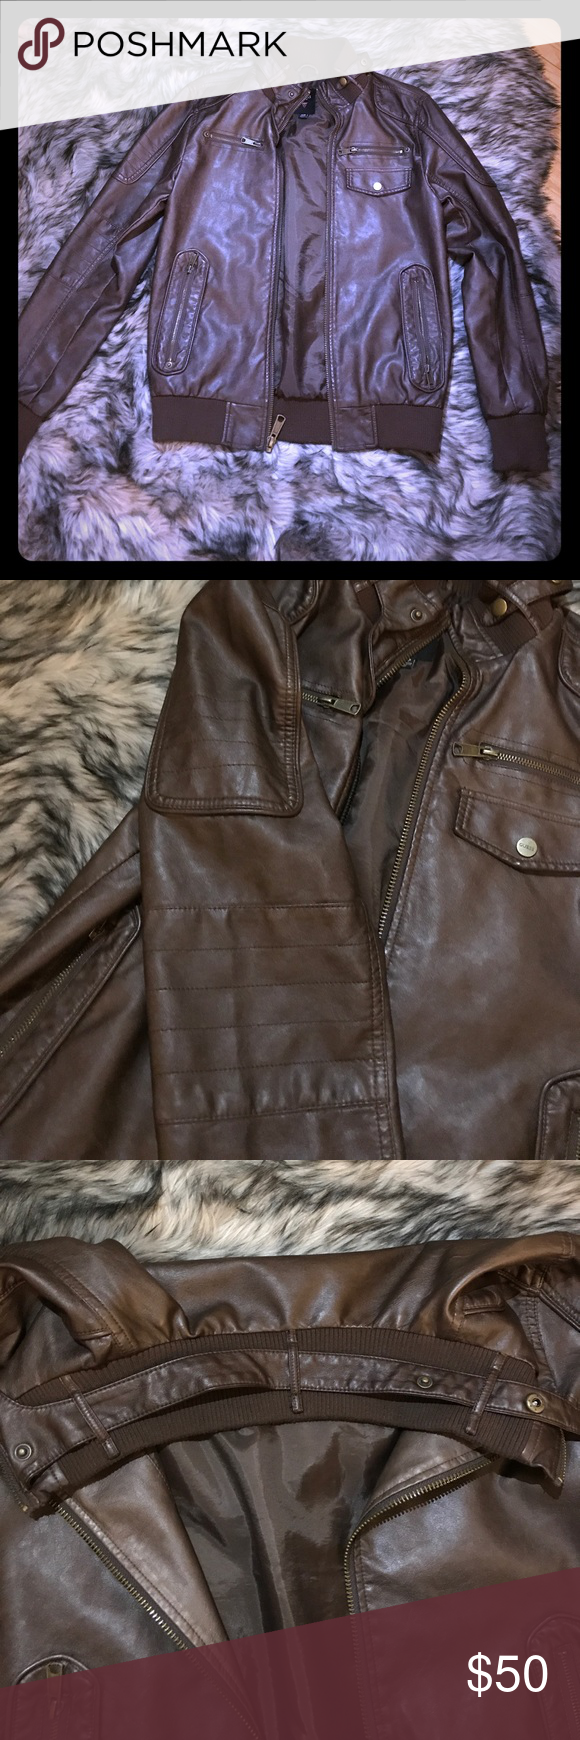 Men S Guess Brown Leather Jacket Brown Leather Jacket Men Leather Jacket Brown Leather Jacket [ 1740 x 580 Pixel ]